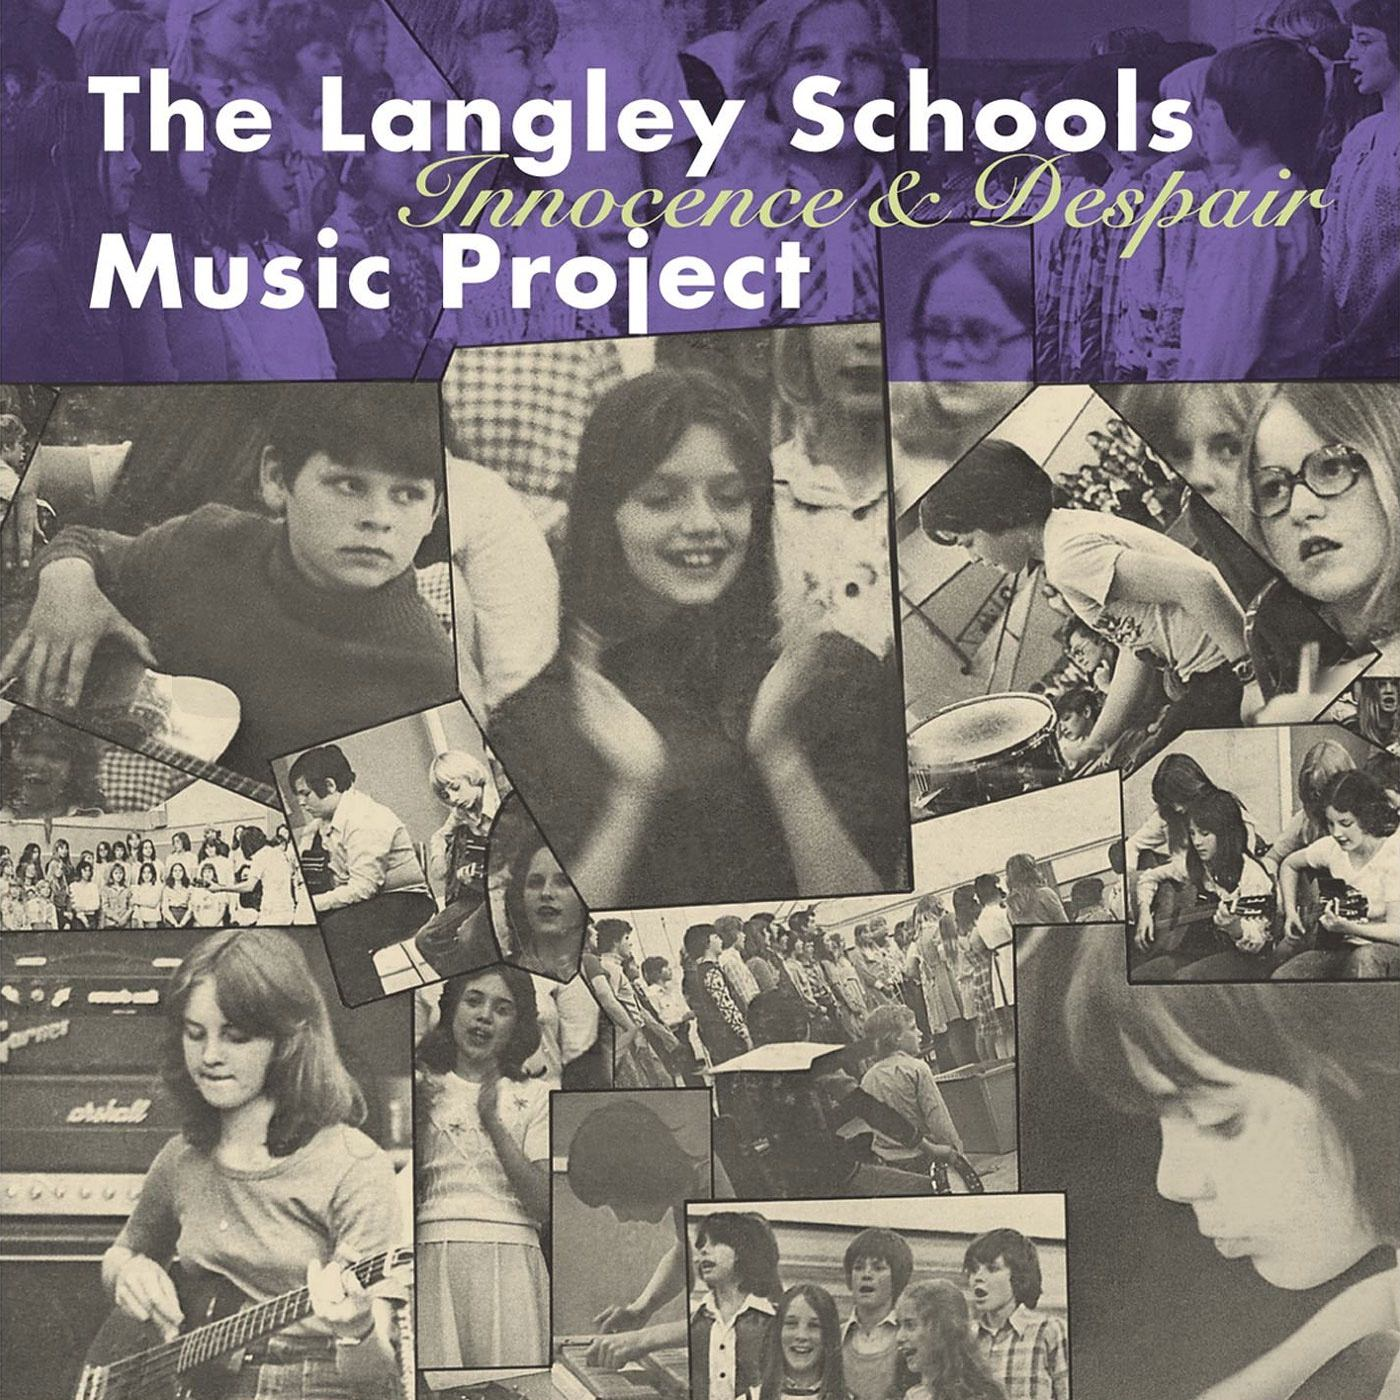 Langley Schools Music Project The Langley Schools Music Project Innocence and Despair